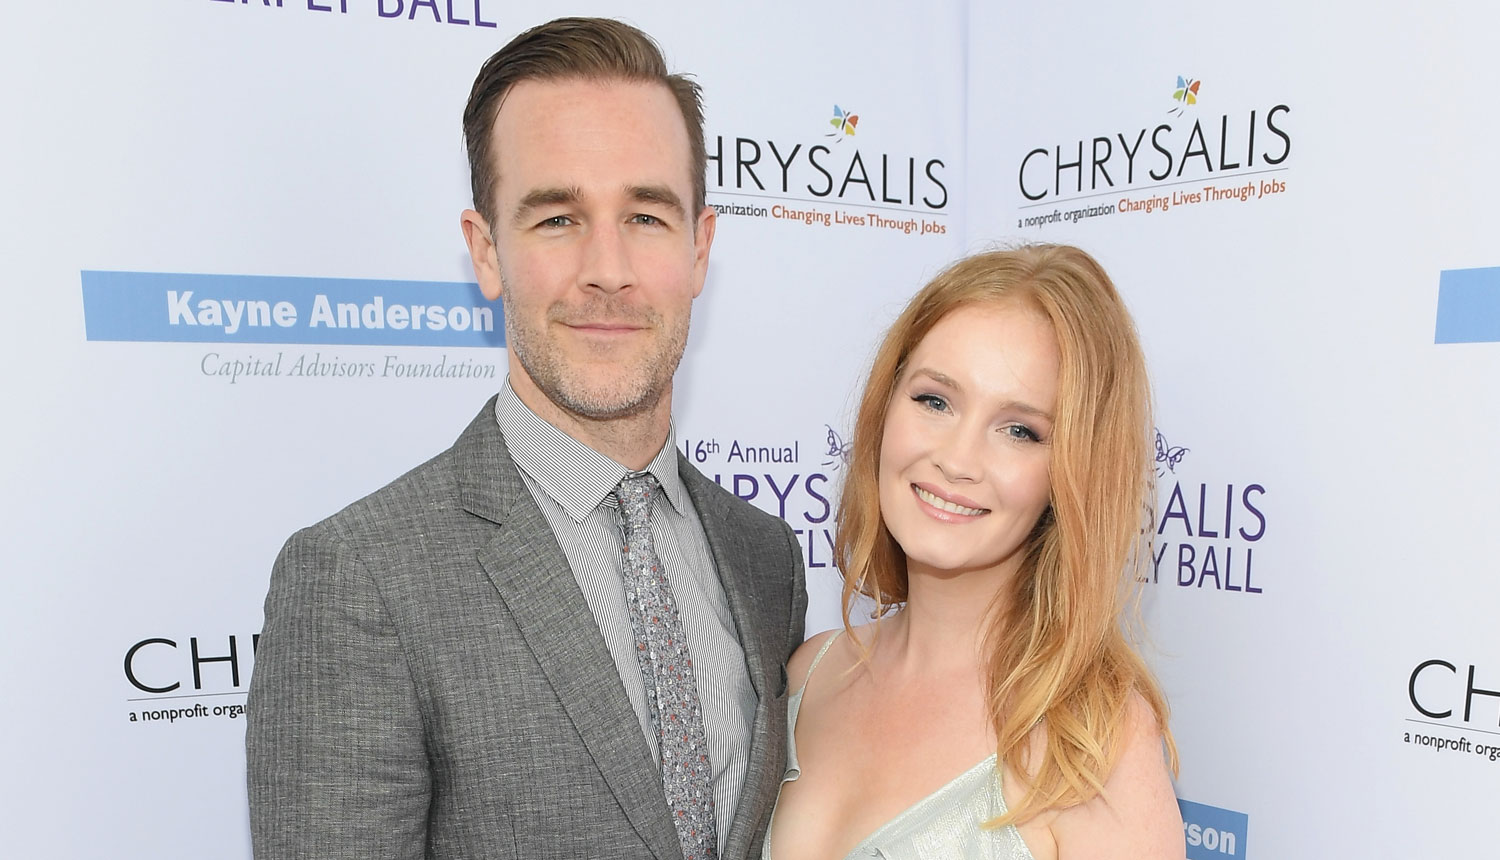 James Van Der Beek Tearfully Reveals He & Wife Kimberly Lost Their Baby